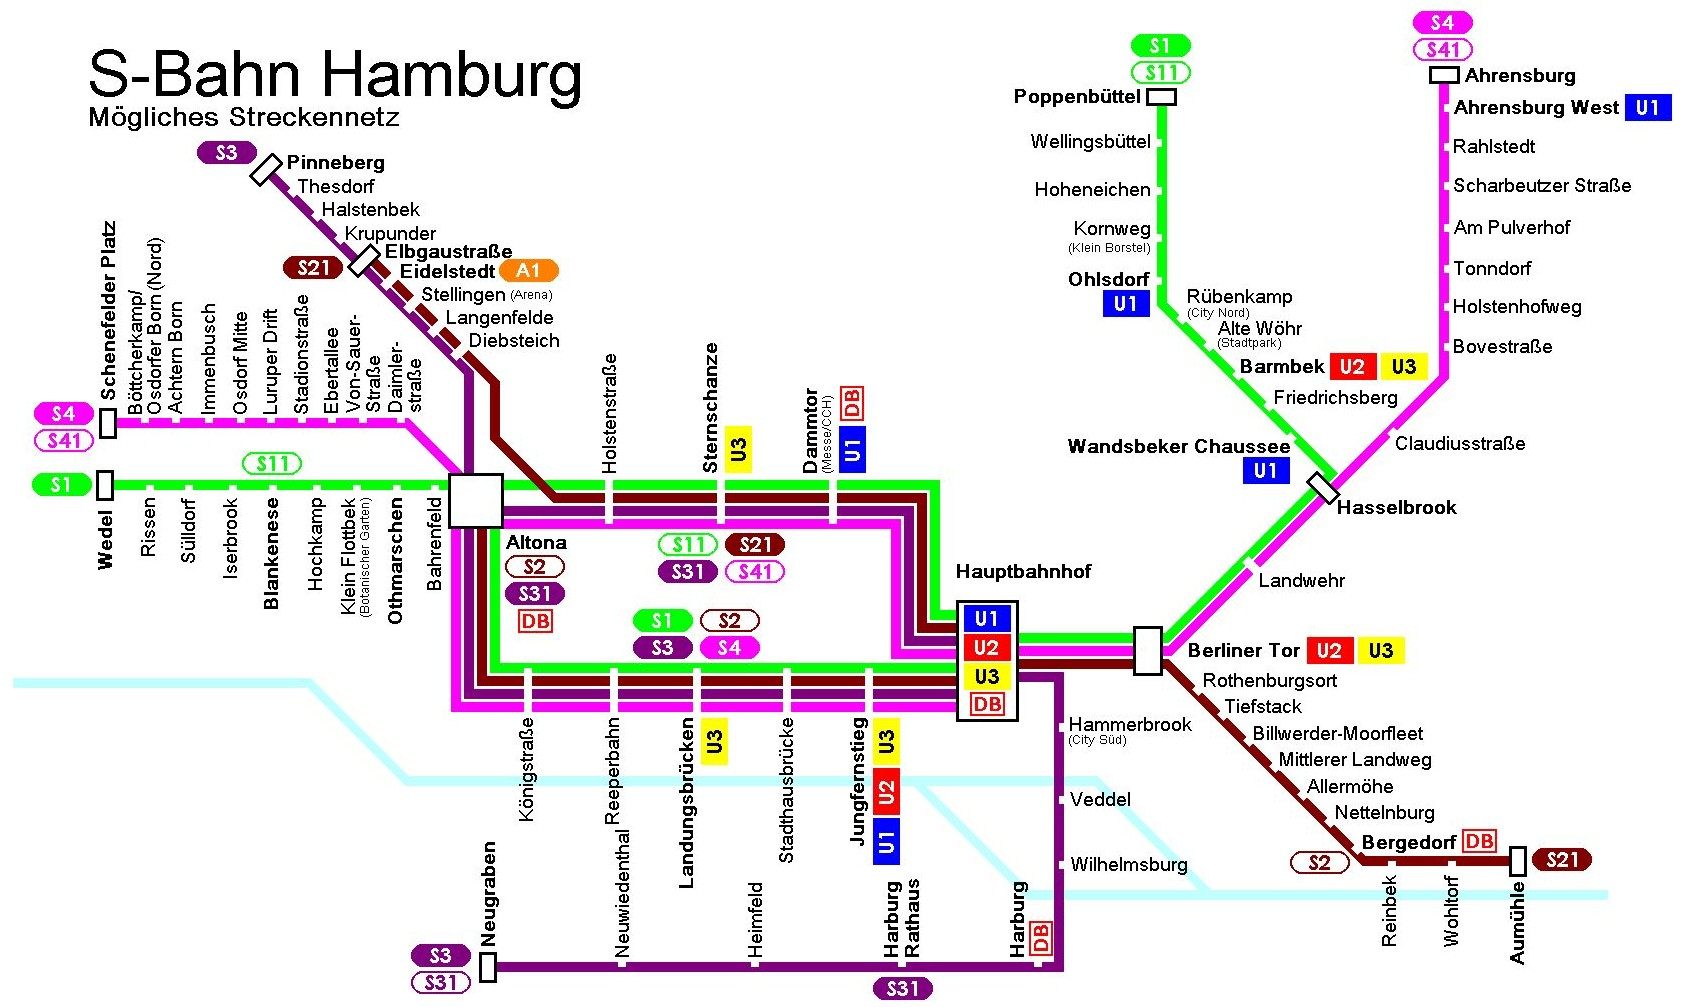 how to get to berlin bus station by s-bann